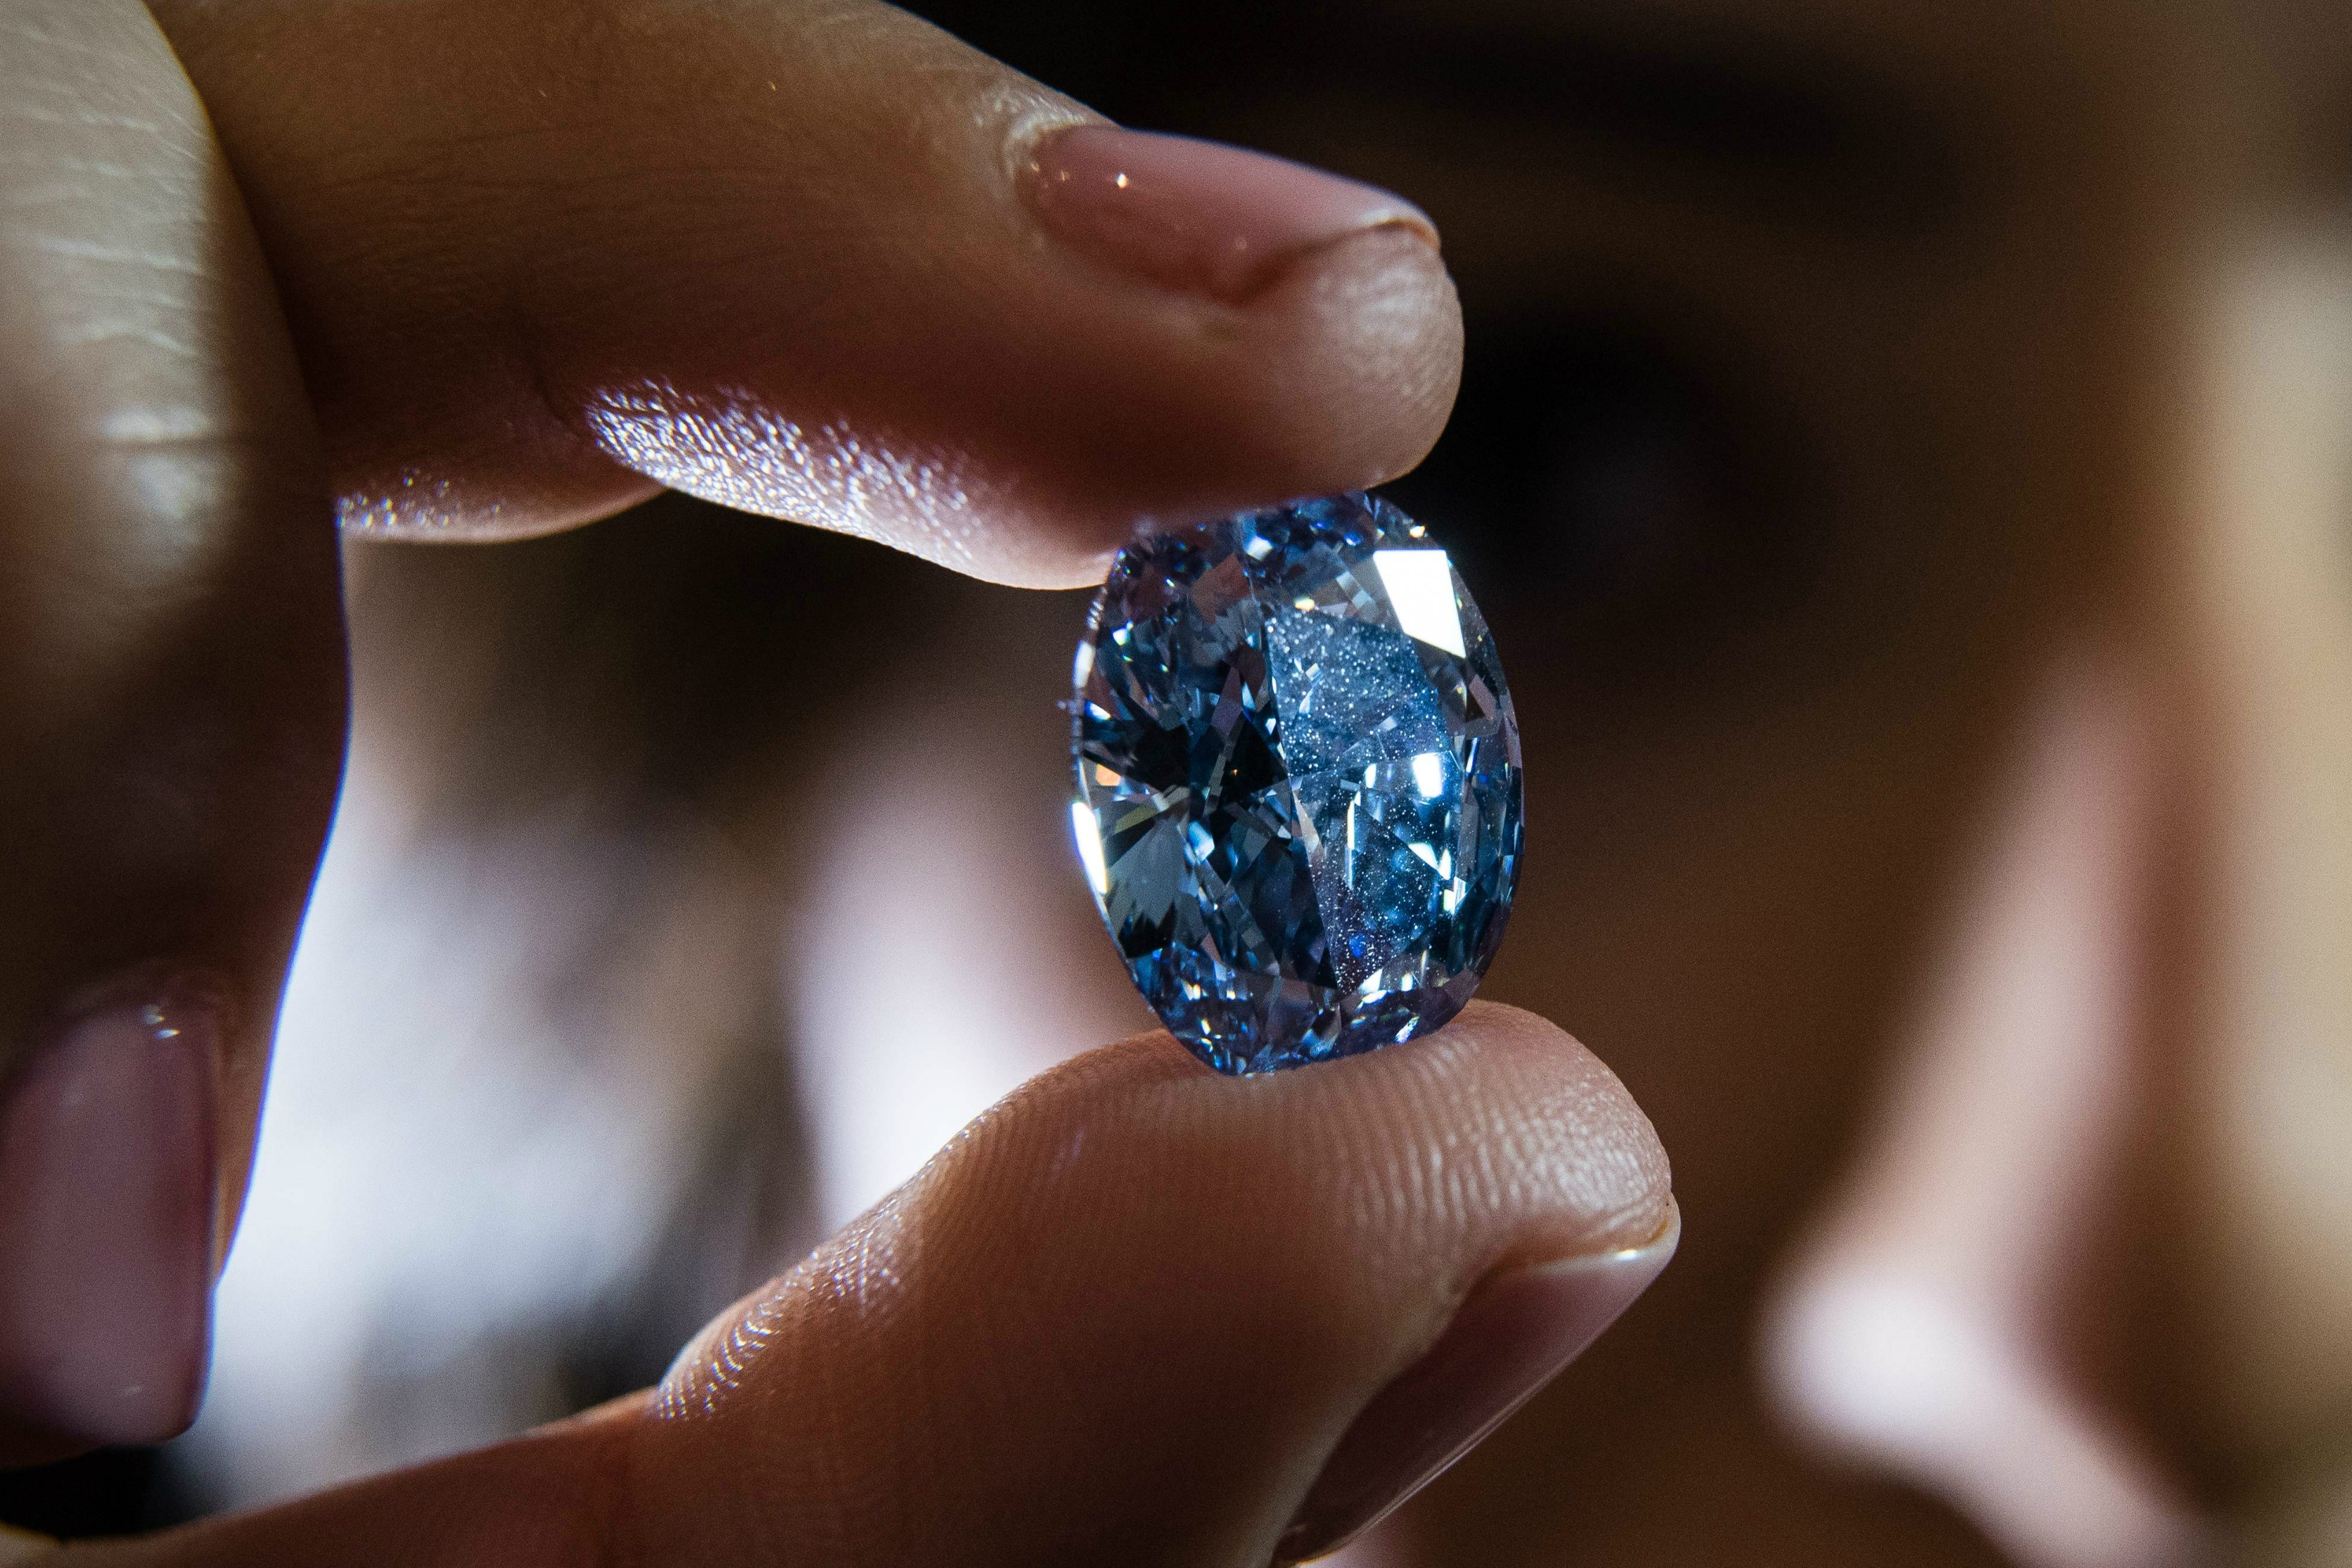 blue rough of s oppenheimer diamond petra christies dream stands items ct out cullinan unique the expertise diamonds christie with offering